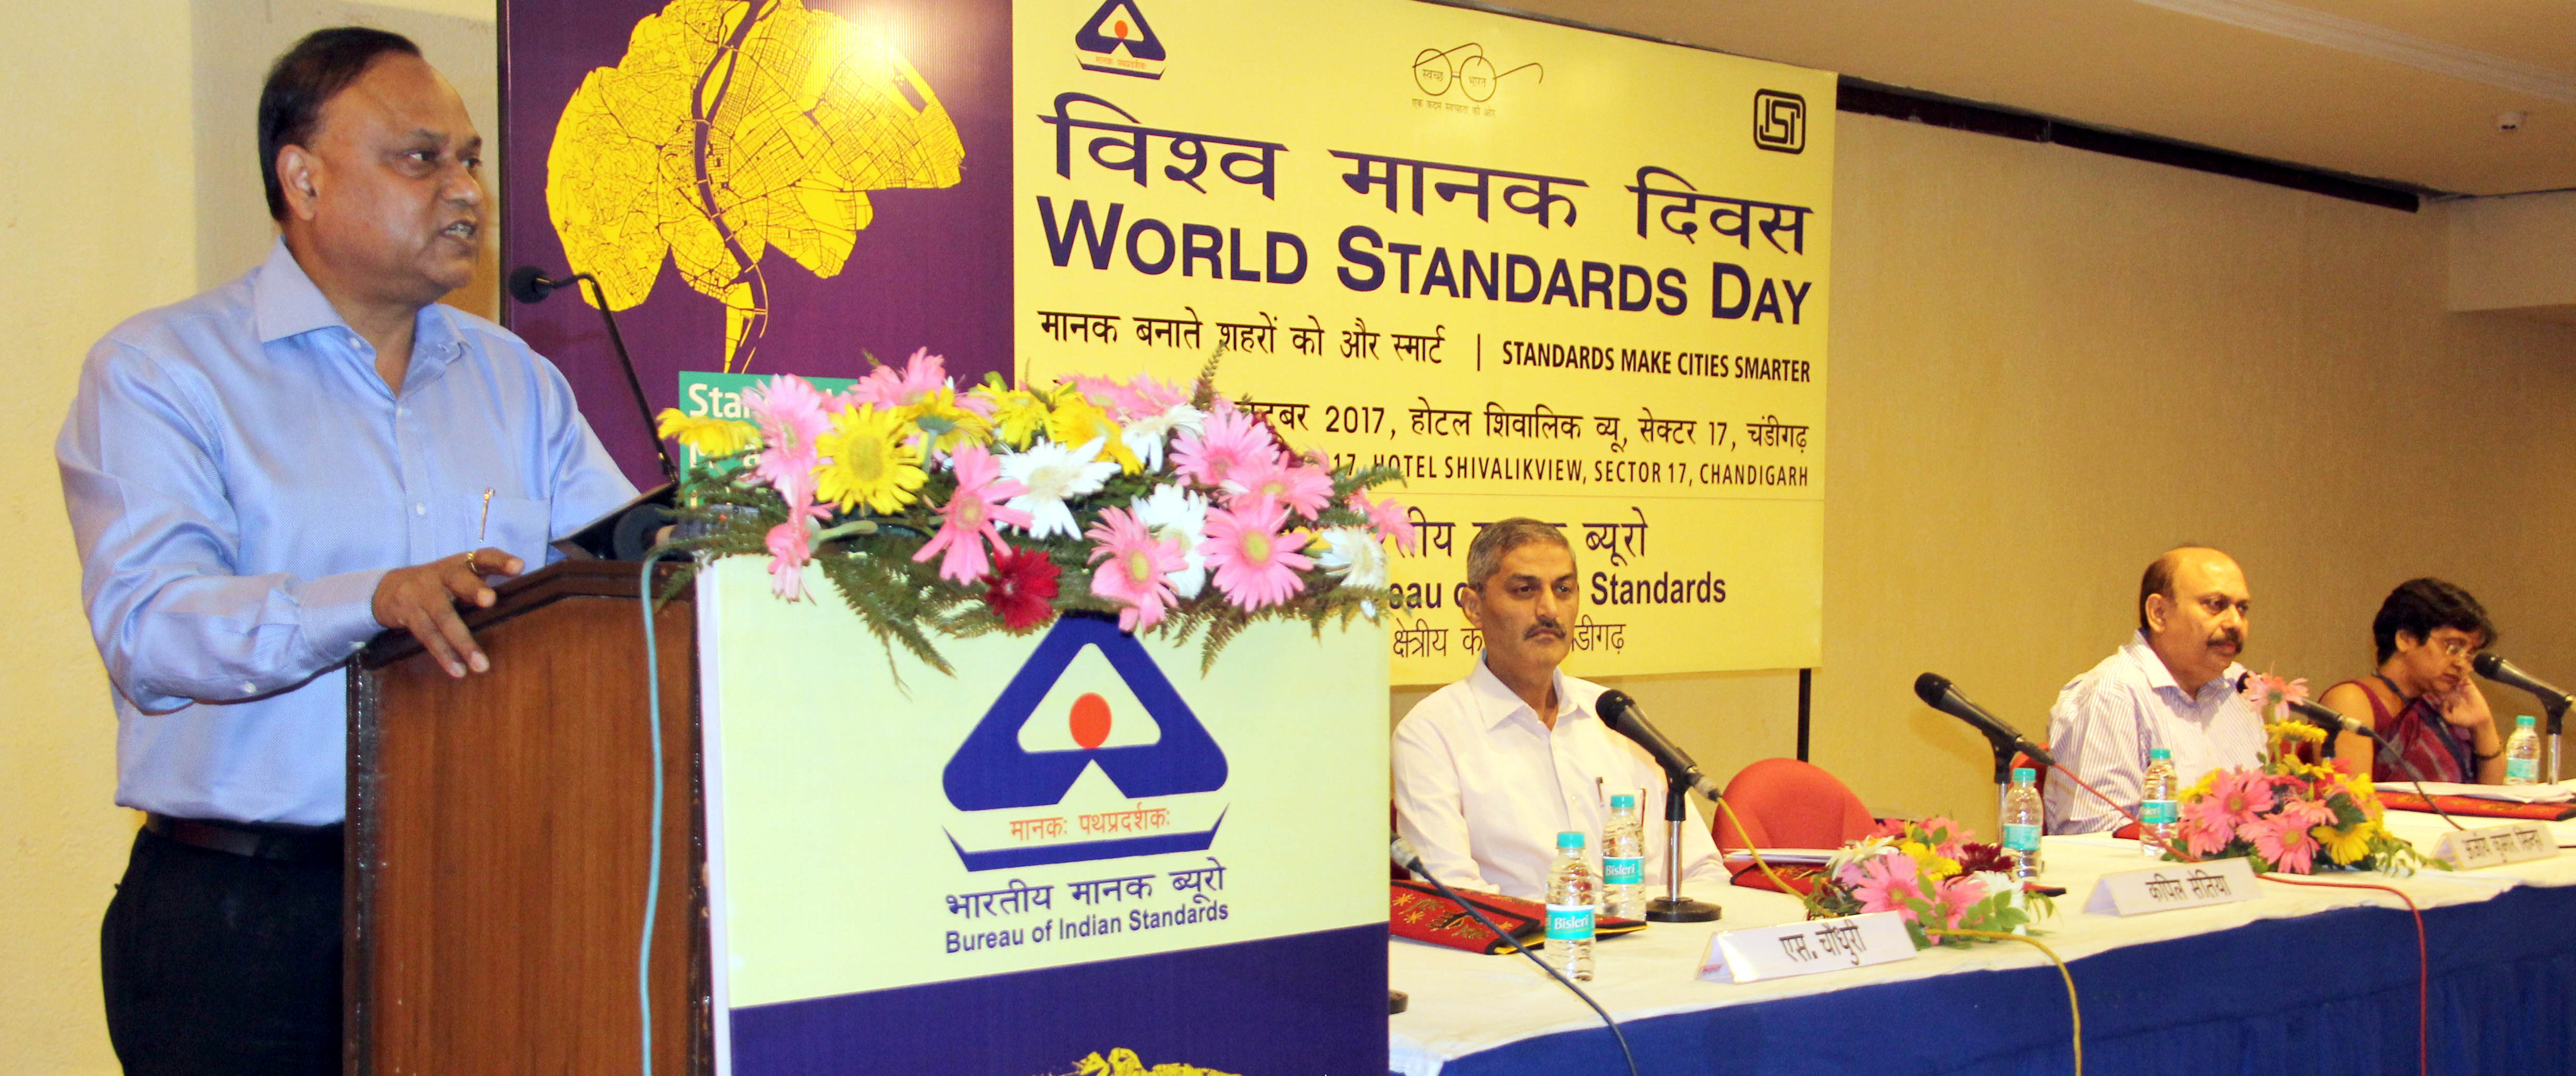 "UT Finance Secretary, Shri Ajoy Kumar Sinha addressing at the  ""World Standards Day"" at Hotel Shivalikview, Sector-17, Chandigarh onMonday, October 16, 2017."